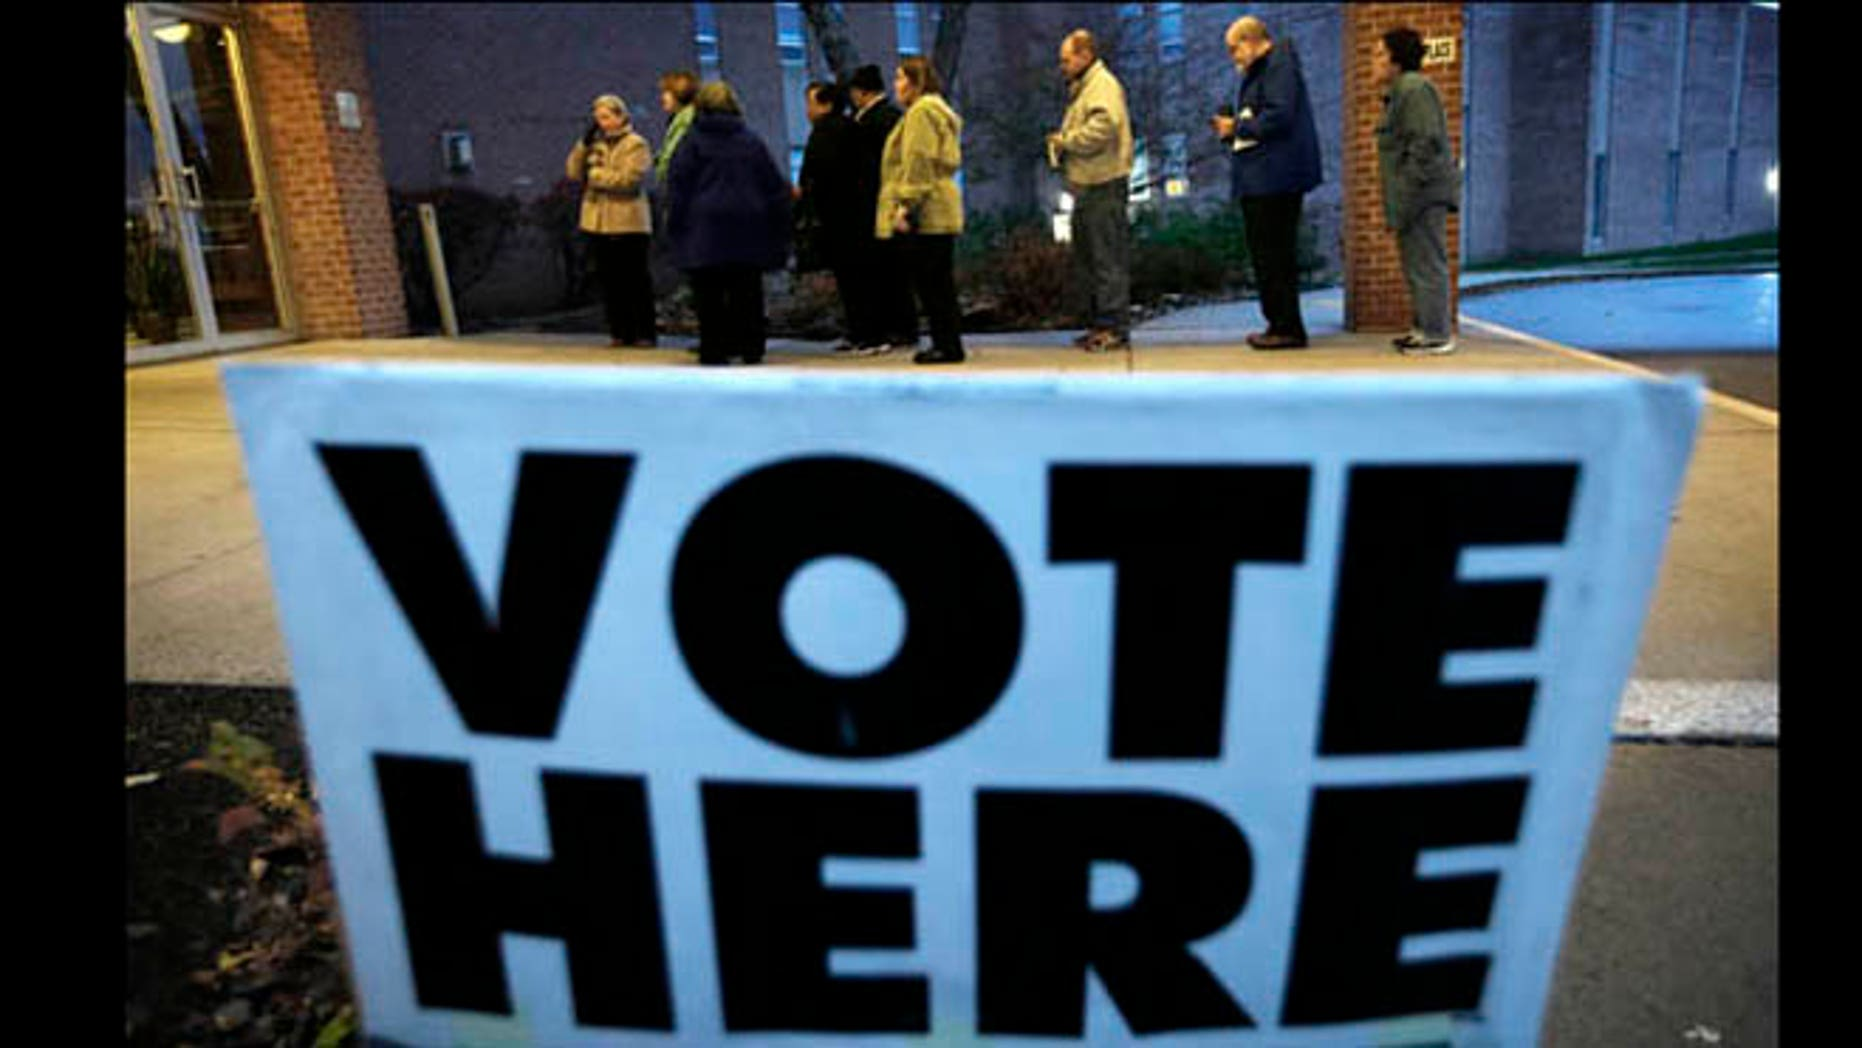 Nov. 6, 2012: Voters wait in line for the doors to Precinct 39 to open before casting their ballots on Election Day.